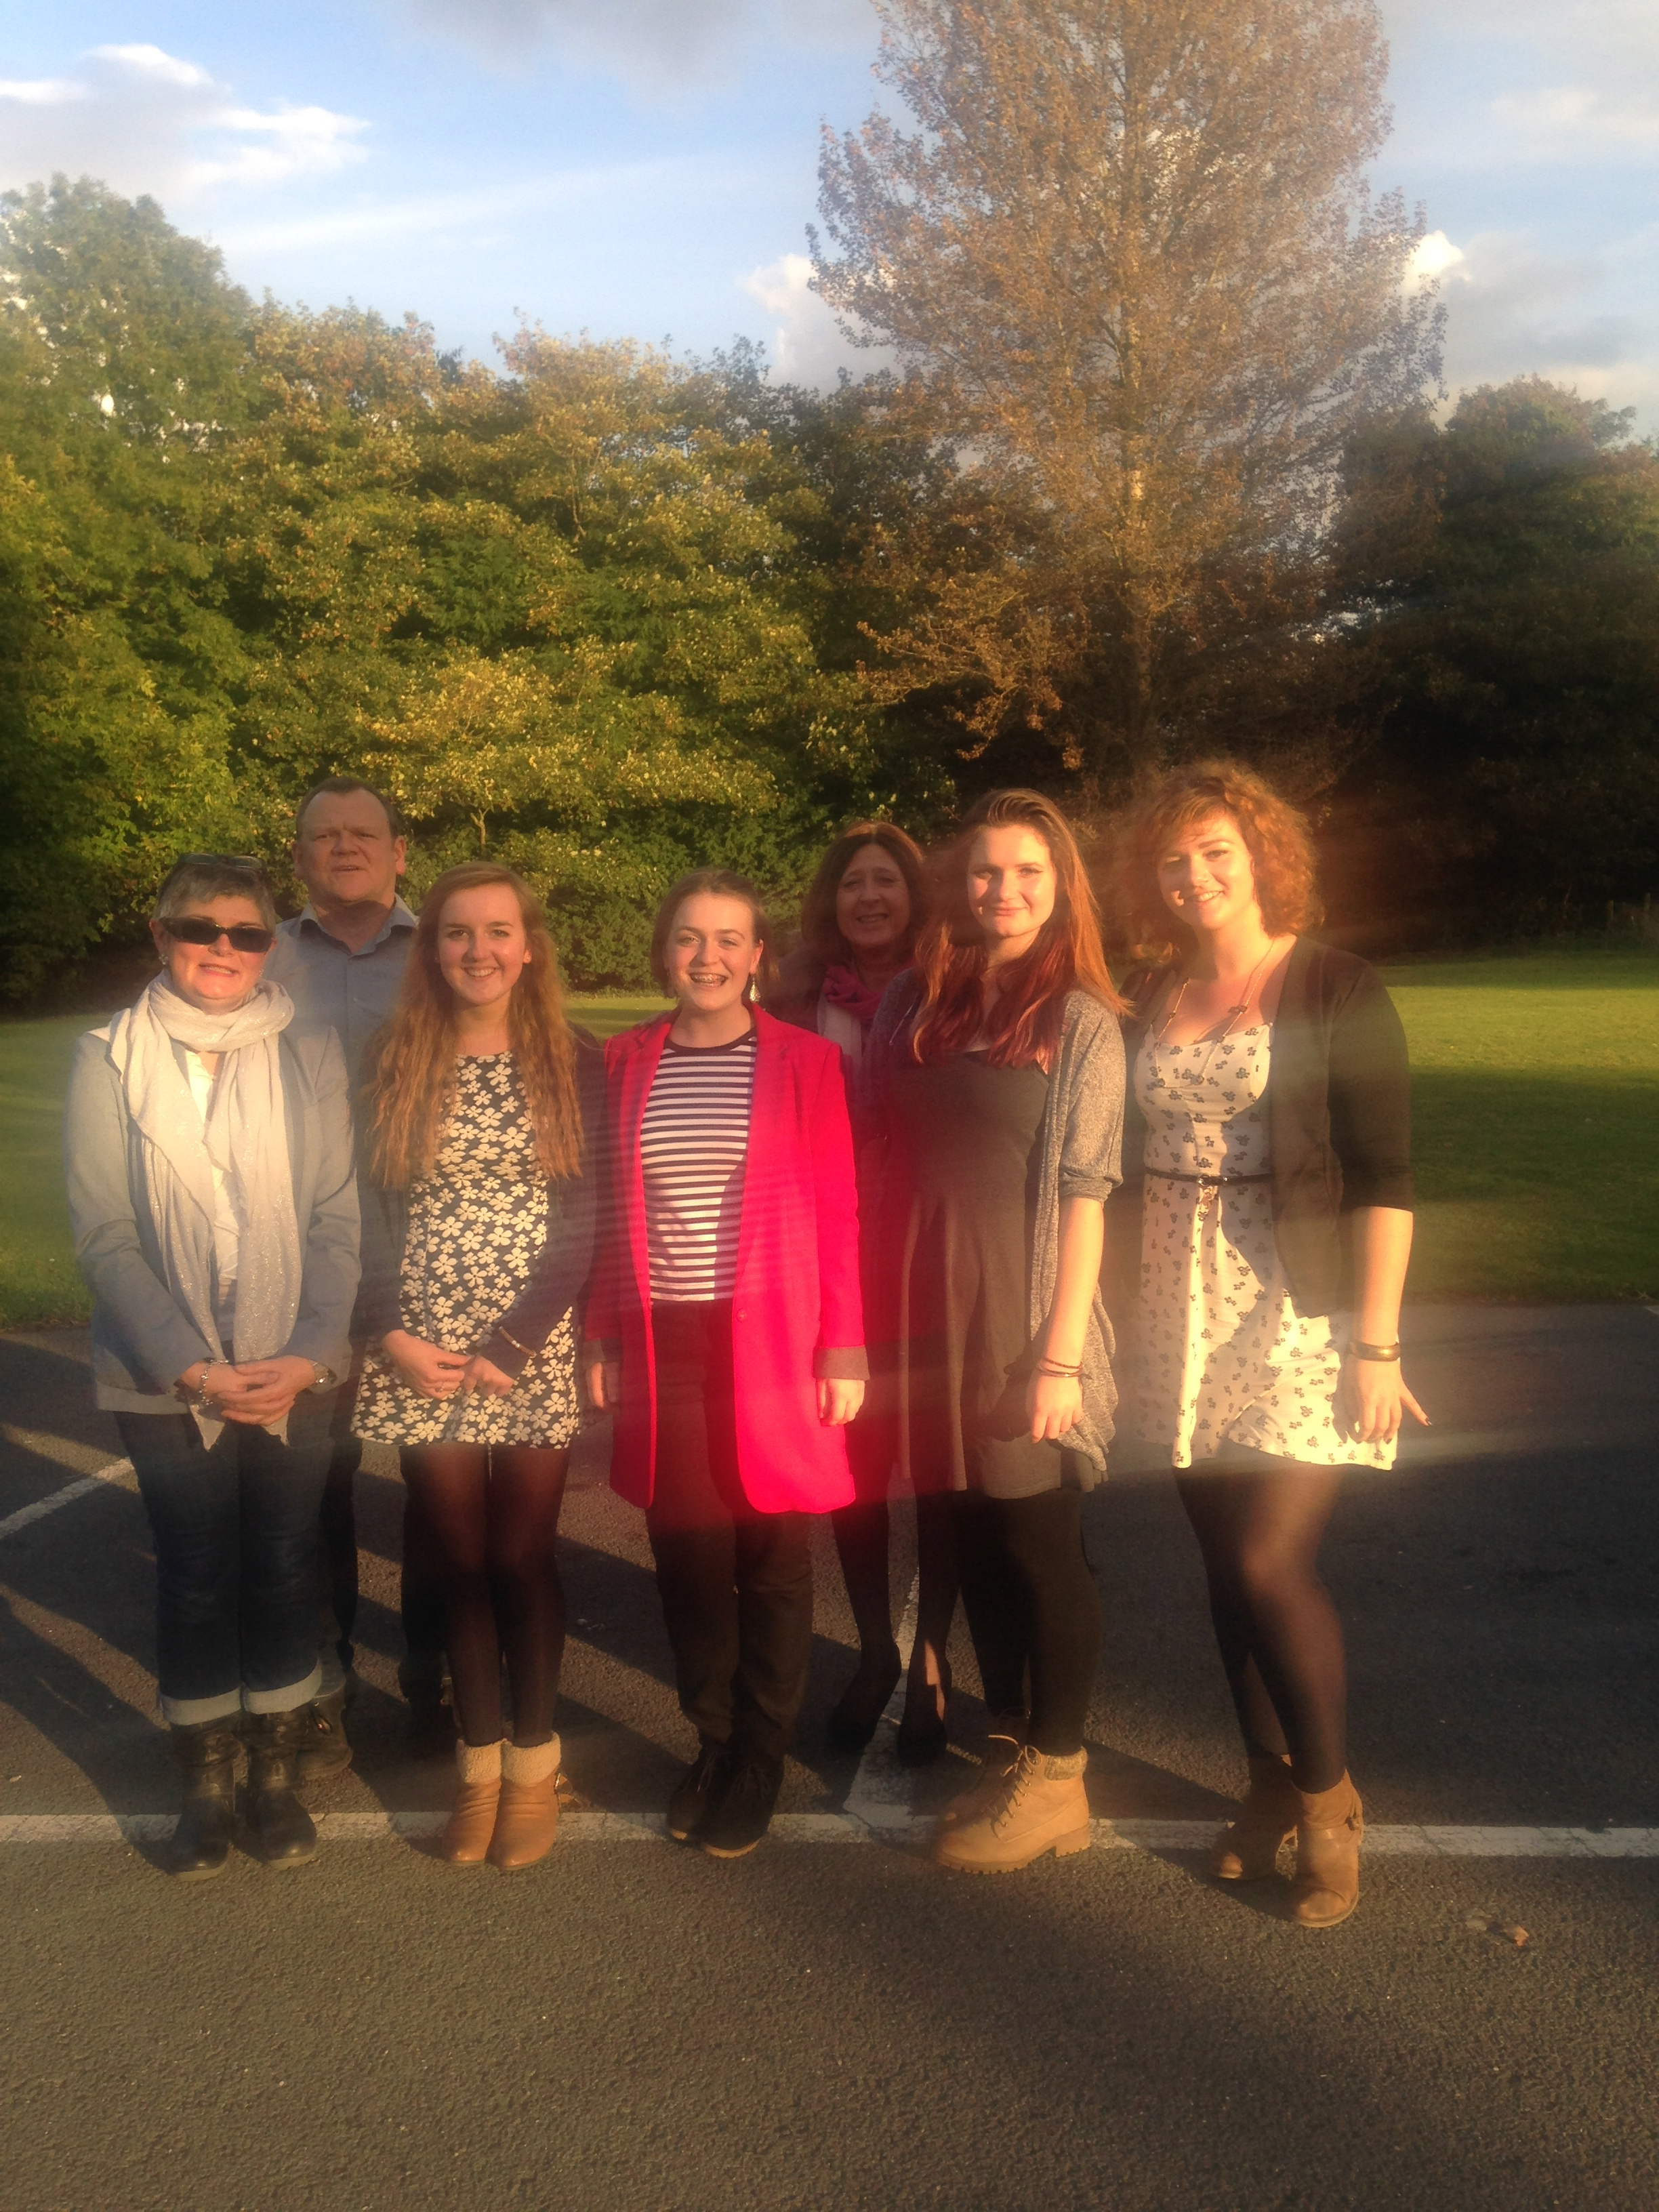 Some of our lovely team who enjoyed our end of season afternoon tea!